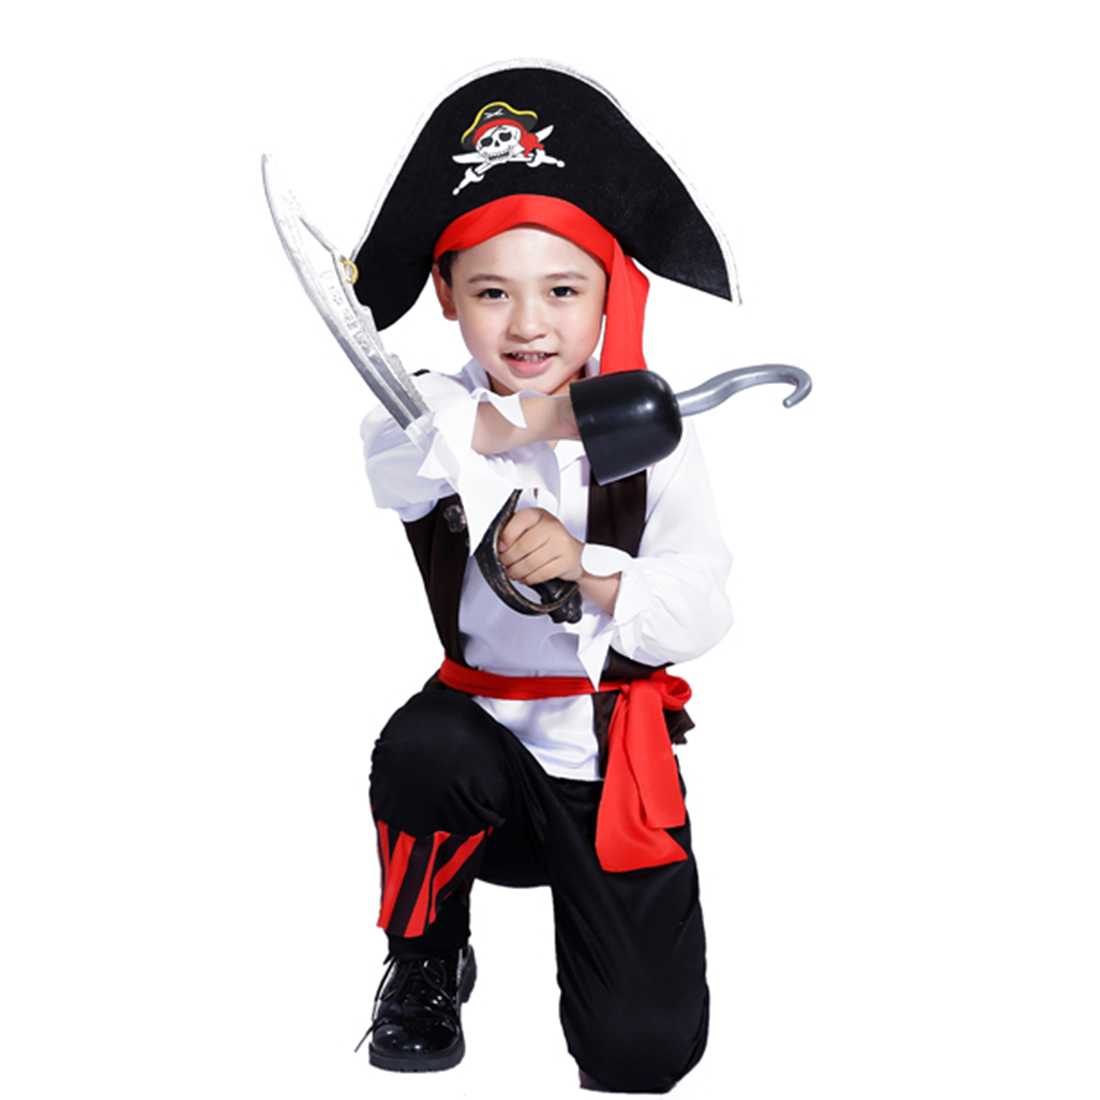 Halloween Pirate Cosplay Suit Domineering Boy Pirate Costume Set With Pirate Knife And Pirate Hook For 4-6 Years Old - M L XL